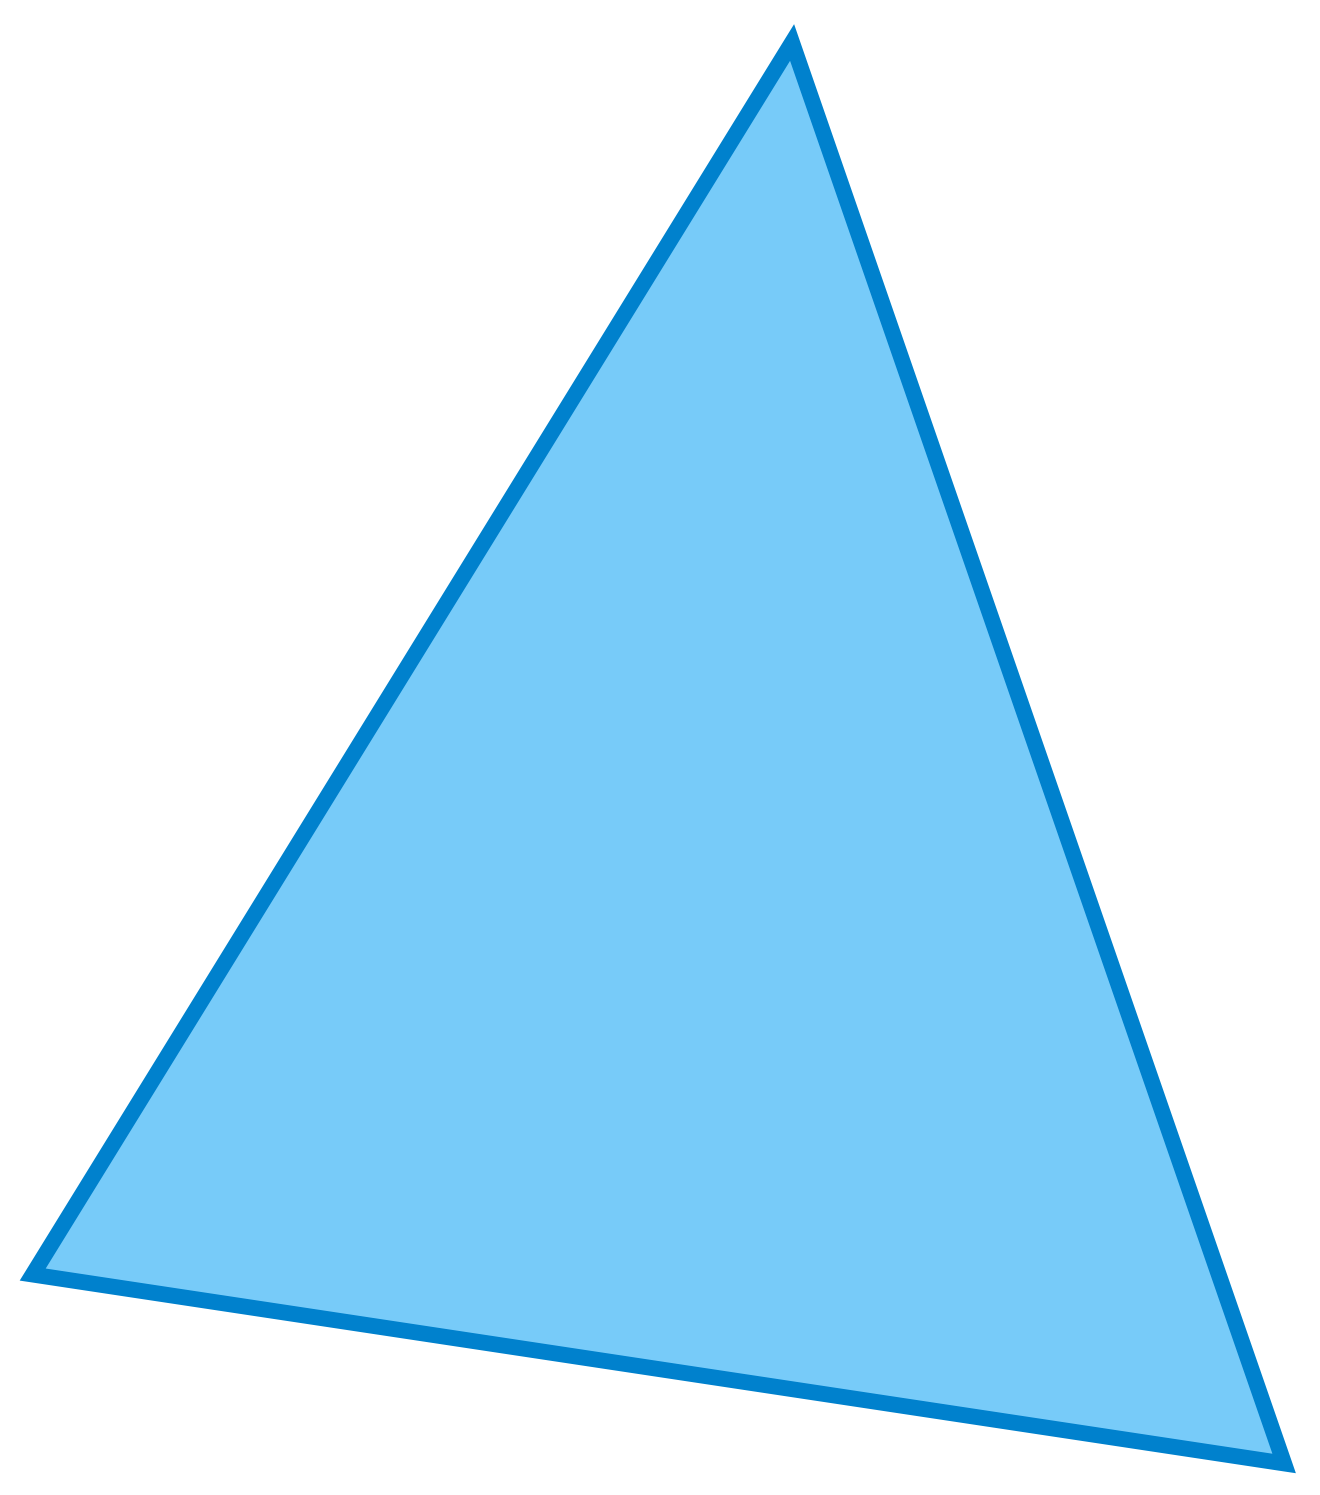 Light blue triangle image #42399 - Free Icons and PNG Backgrounds